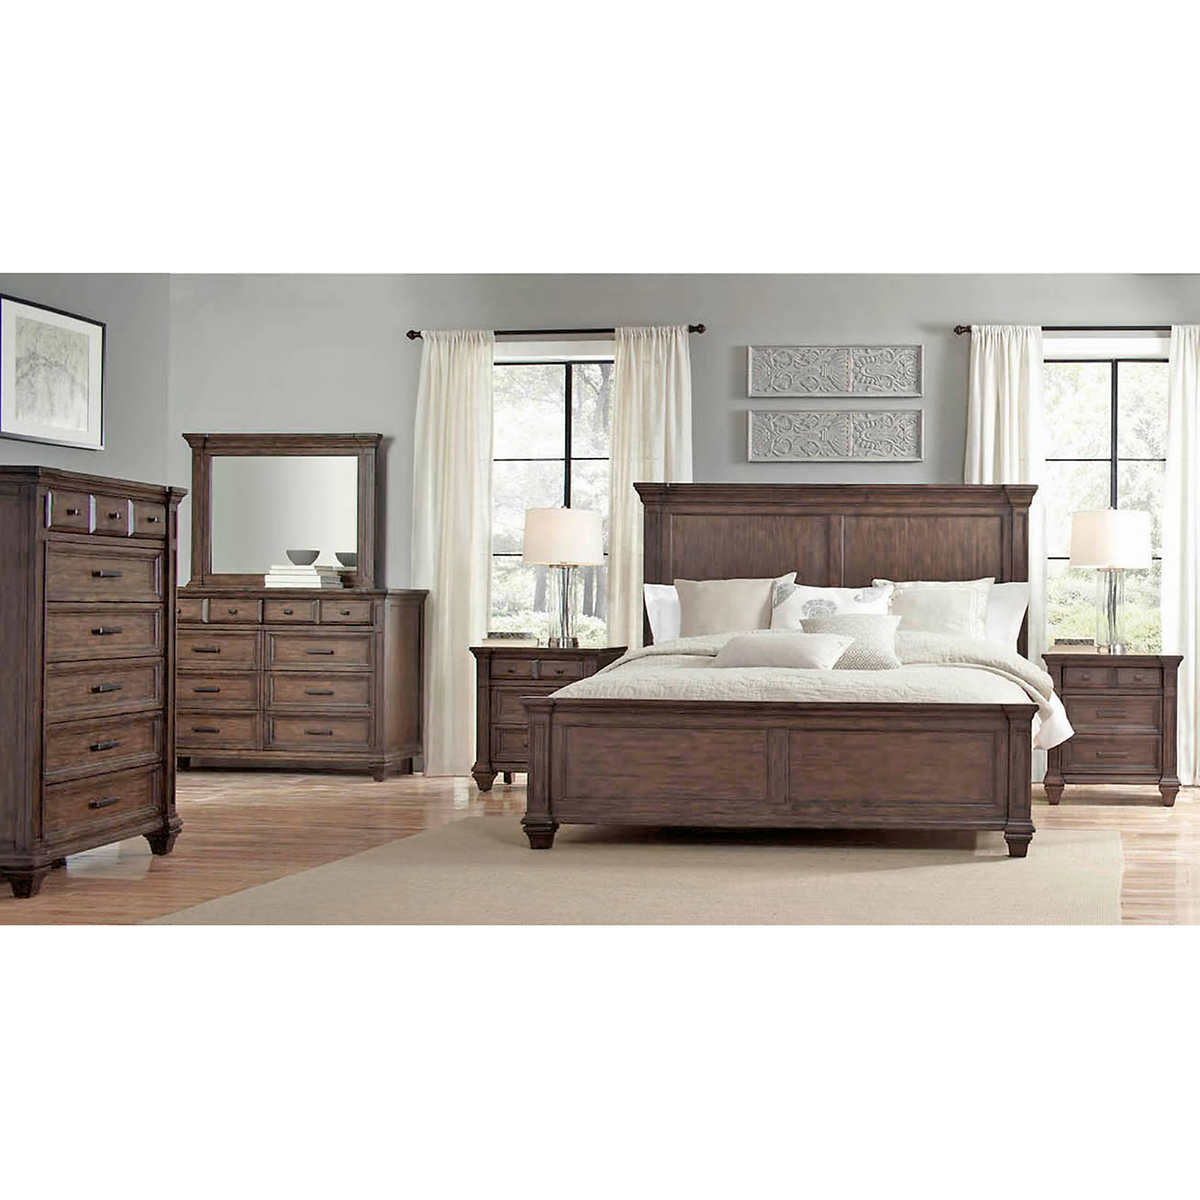 Andaluz 6 Piece King Bedroom Set